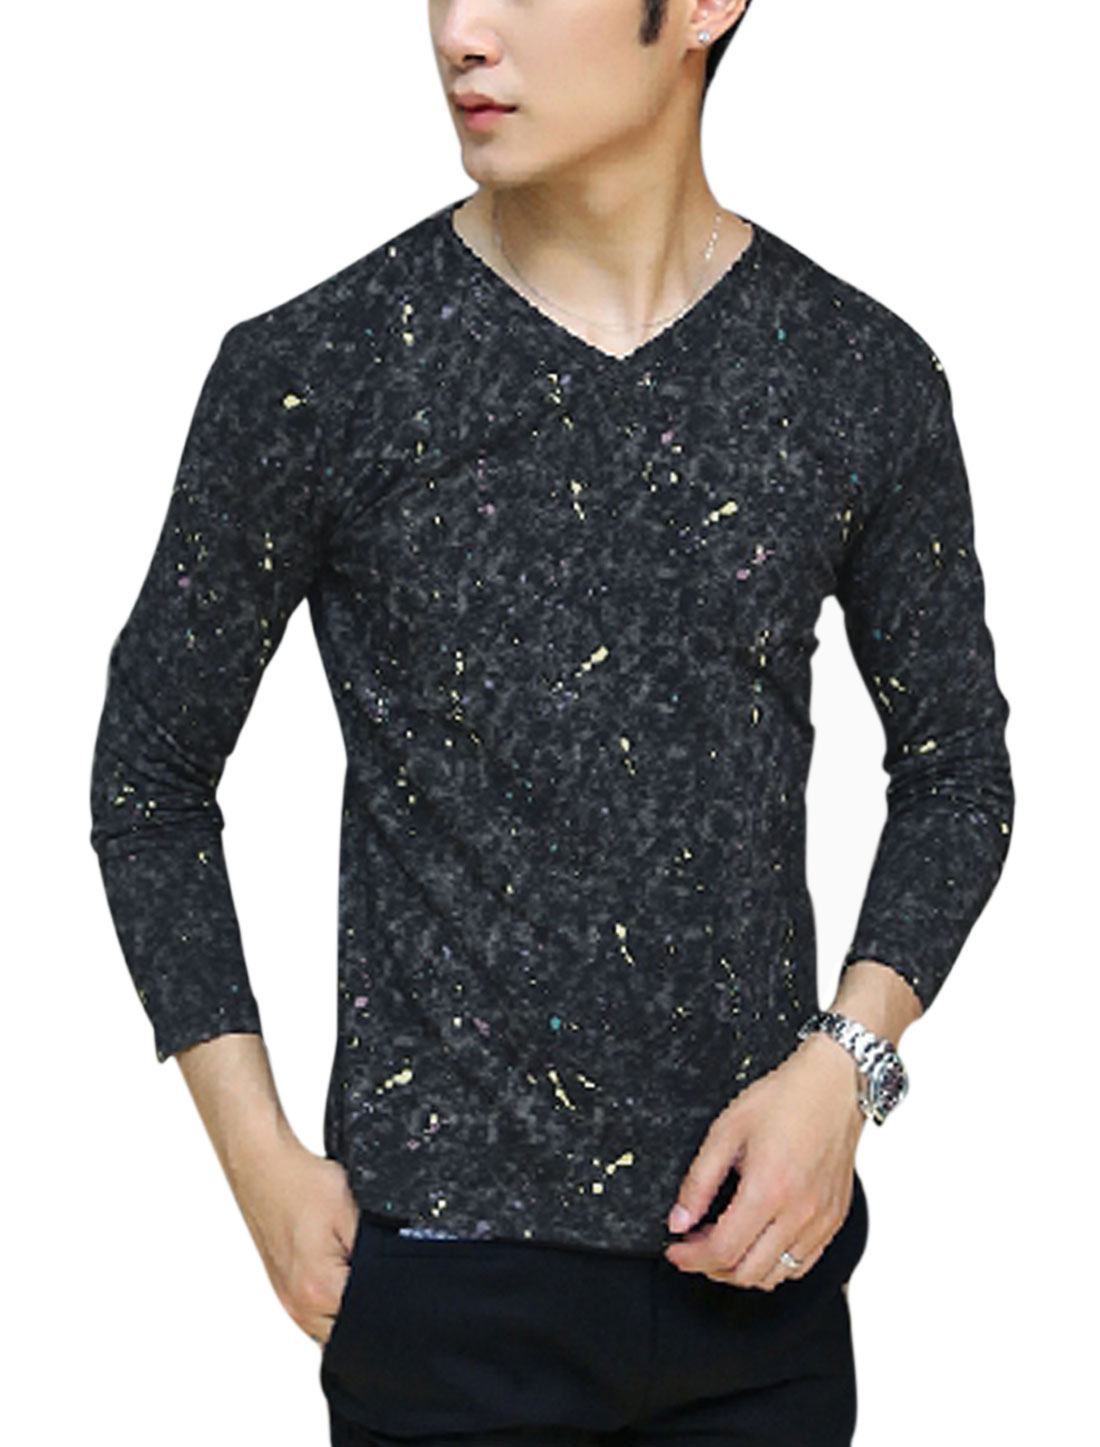 Men Dots Printed Dye Design Pullover Slim Cozy T-shirt Black M